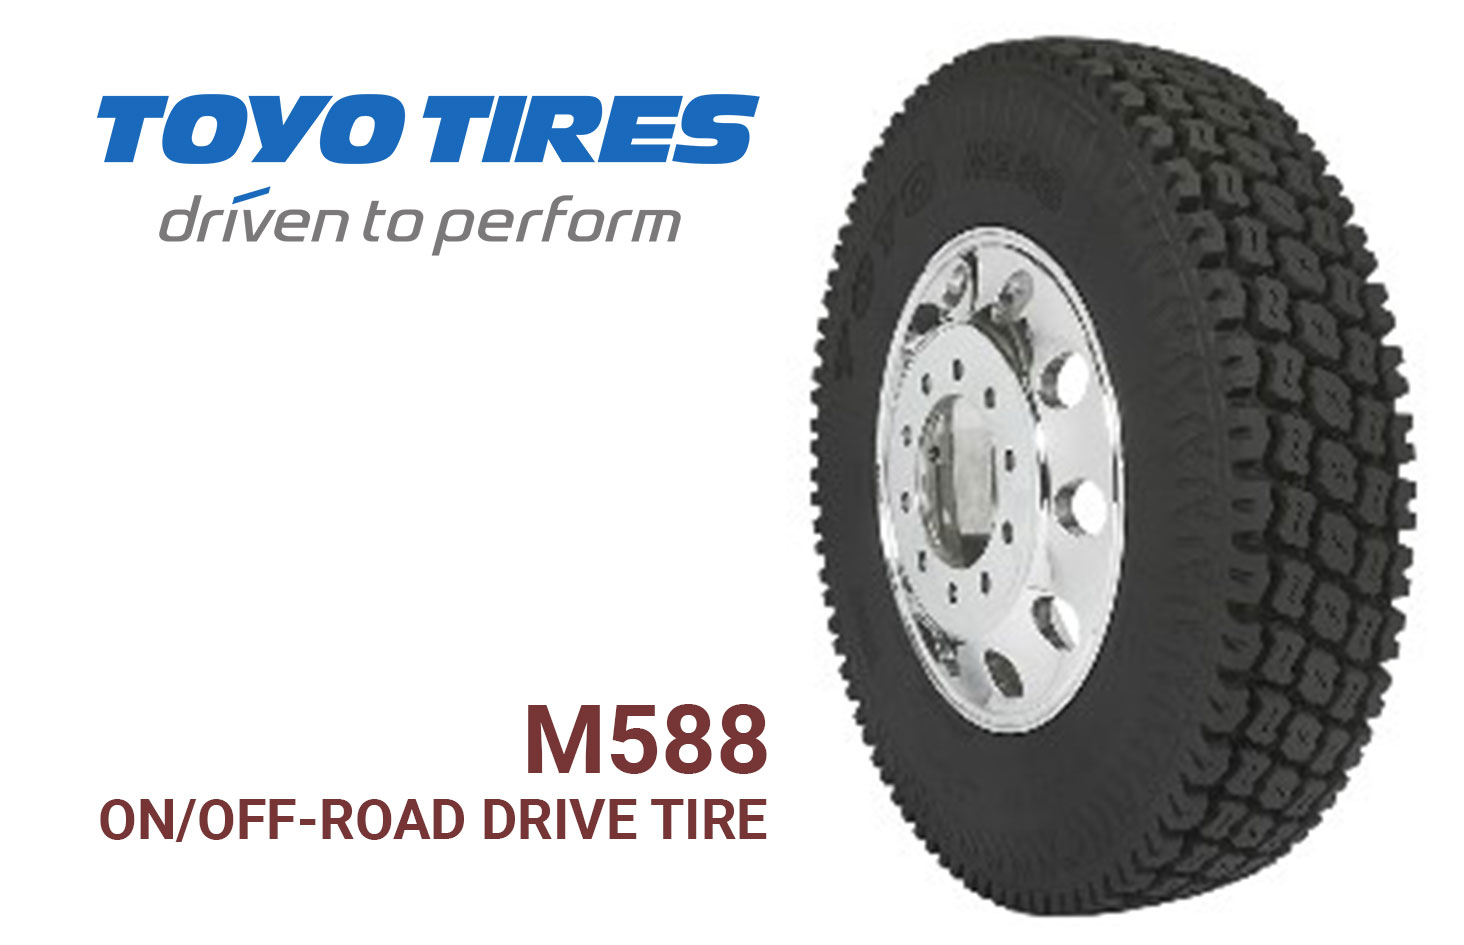 Toyo Tires Launches M588 On/Off-Road Drive Tire